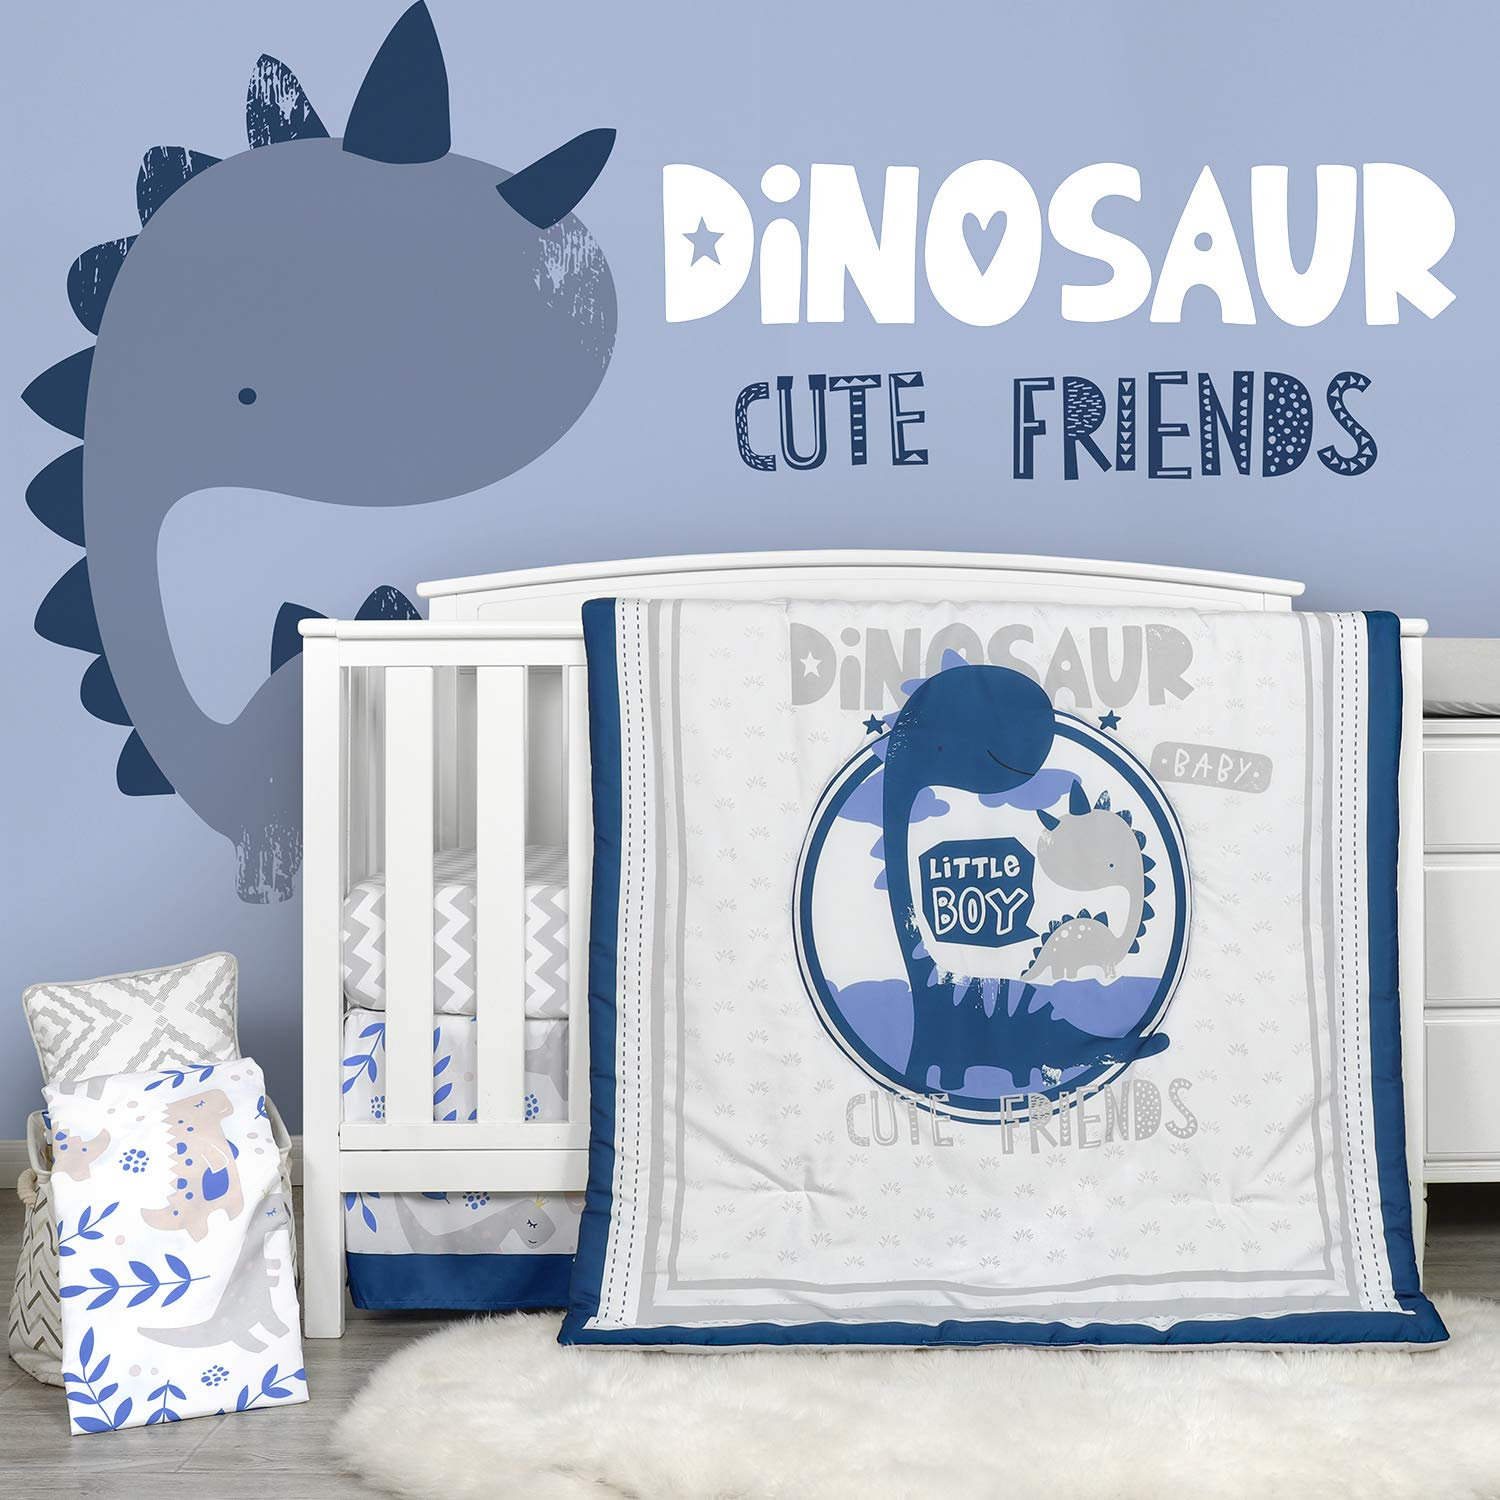 TILLYOU Luxury 4 Pieces Dinosaur Crib Bedding Set (Embroidered Comforter, Crib Sheets, Crib Skirt) - Microfiber Printed Nursery Bedding Set for Boys Girls